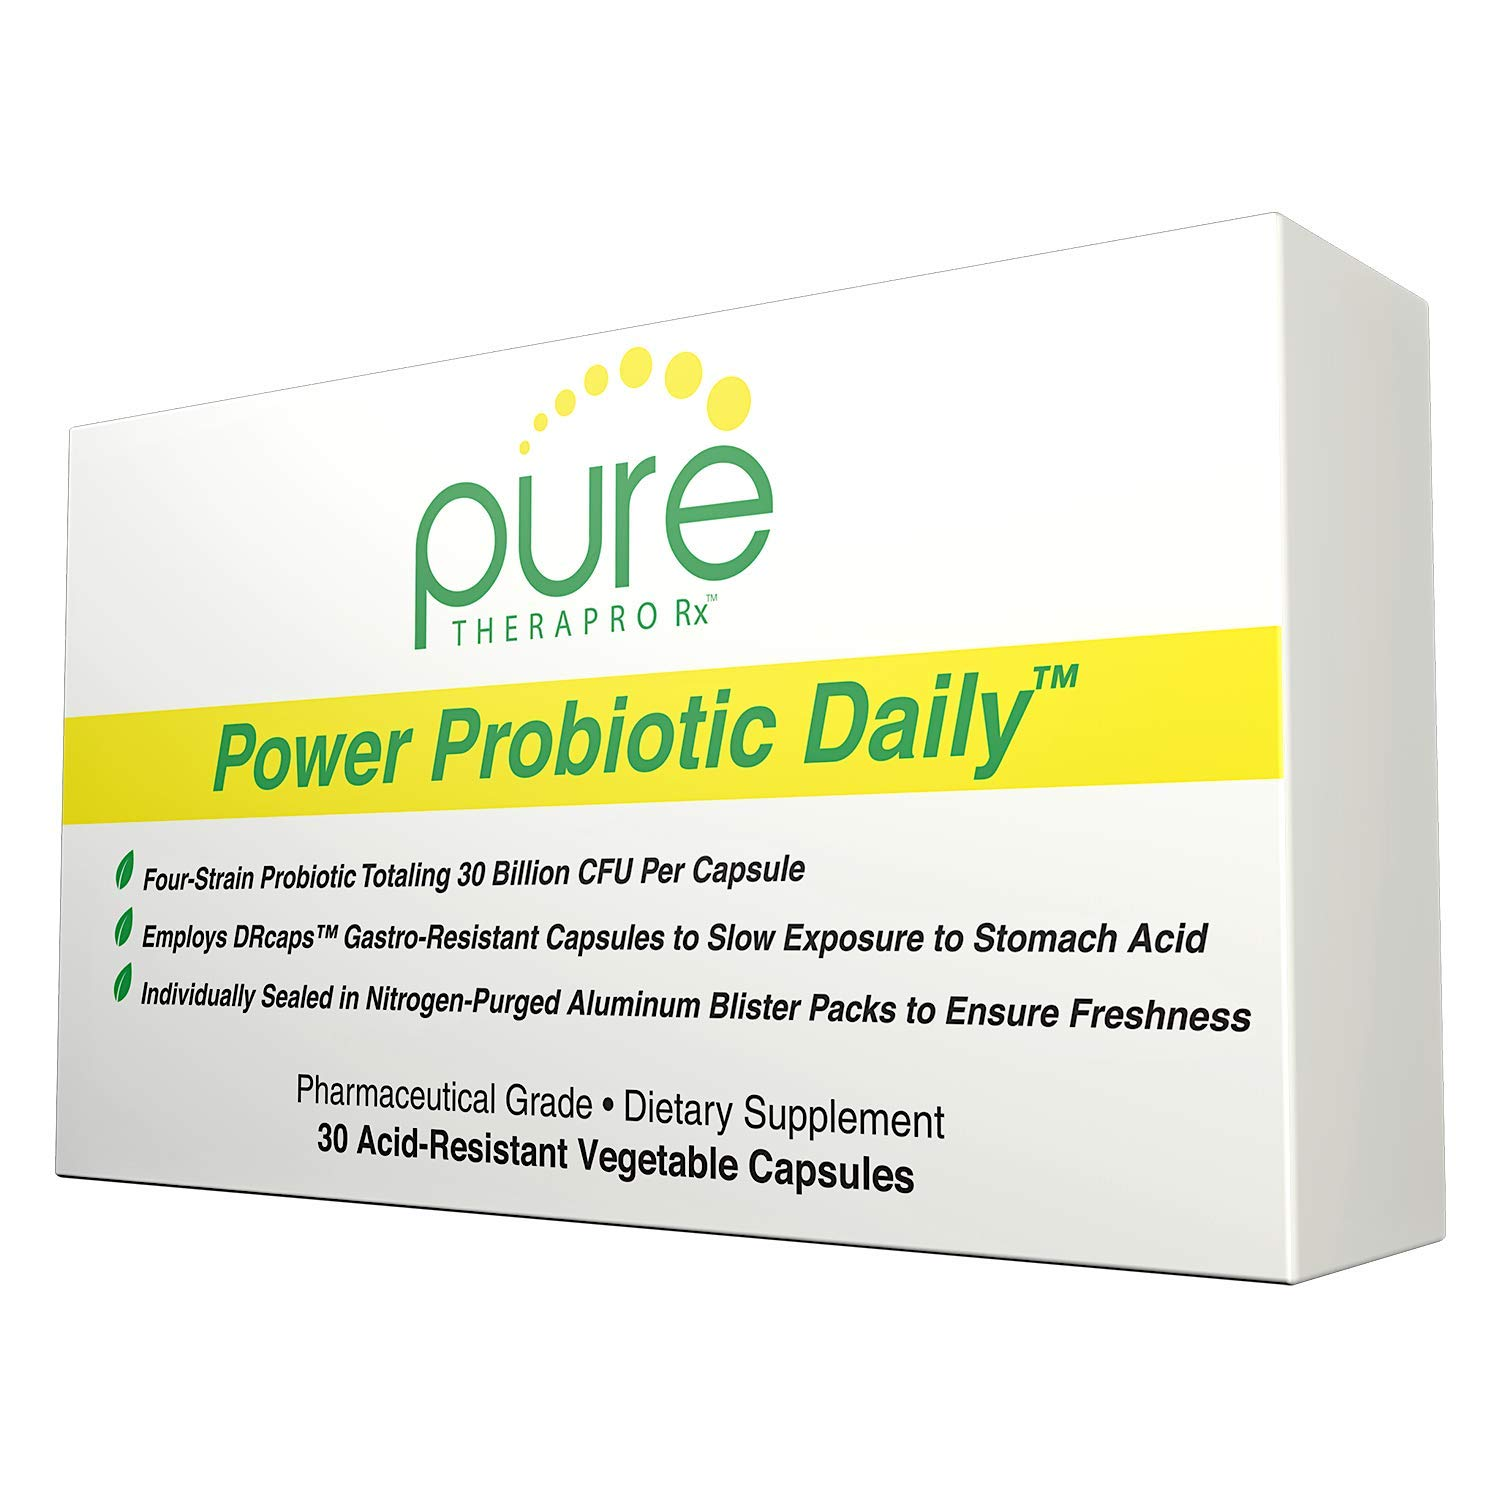 """Power Probiotic Daily - 30""""Acid-Resistant"""" Vcaps   4 Proven Strains - 30 Billion CFU Per Capsule   Sealed in Nitrogen-Purged Aluminum Blister Packs to Insure Freshness   NO Refrigeration Required"""